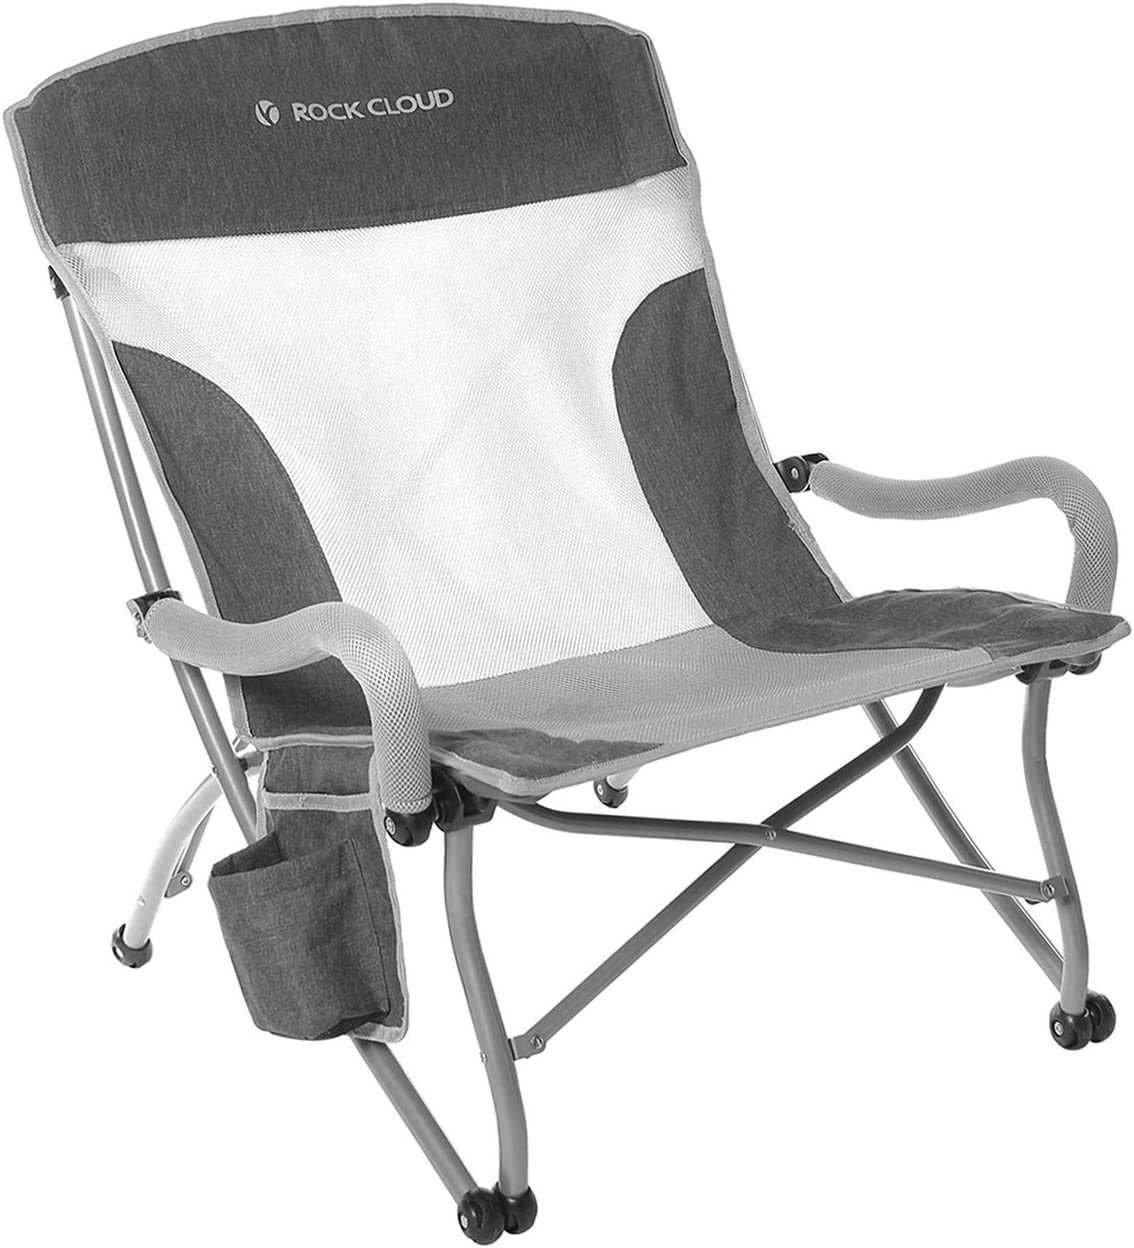 Rock Cloud Portable Folding Camping Chair Low Beach Chair for Camp Lawn Hiking Sports Hunting, Grey